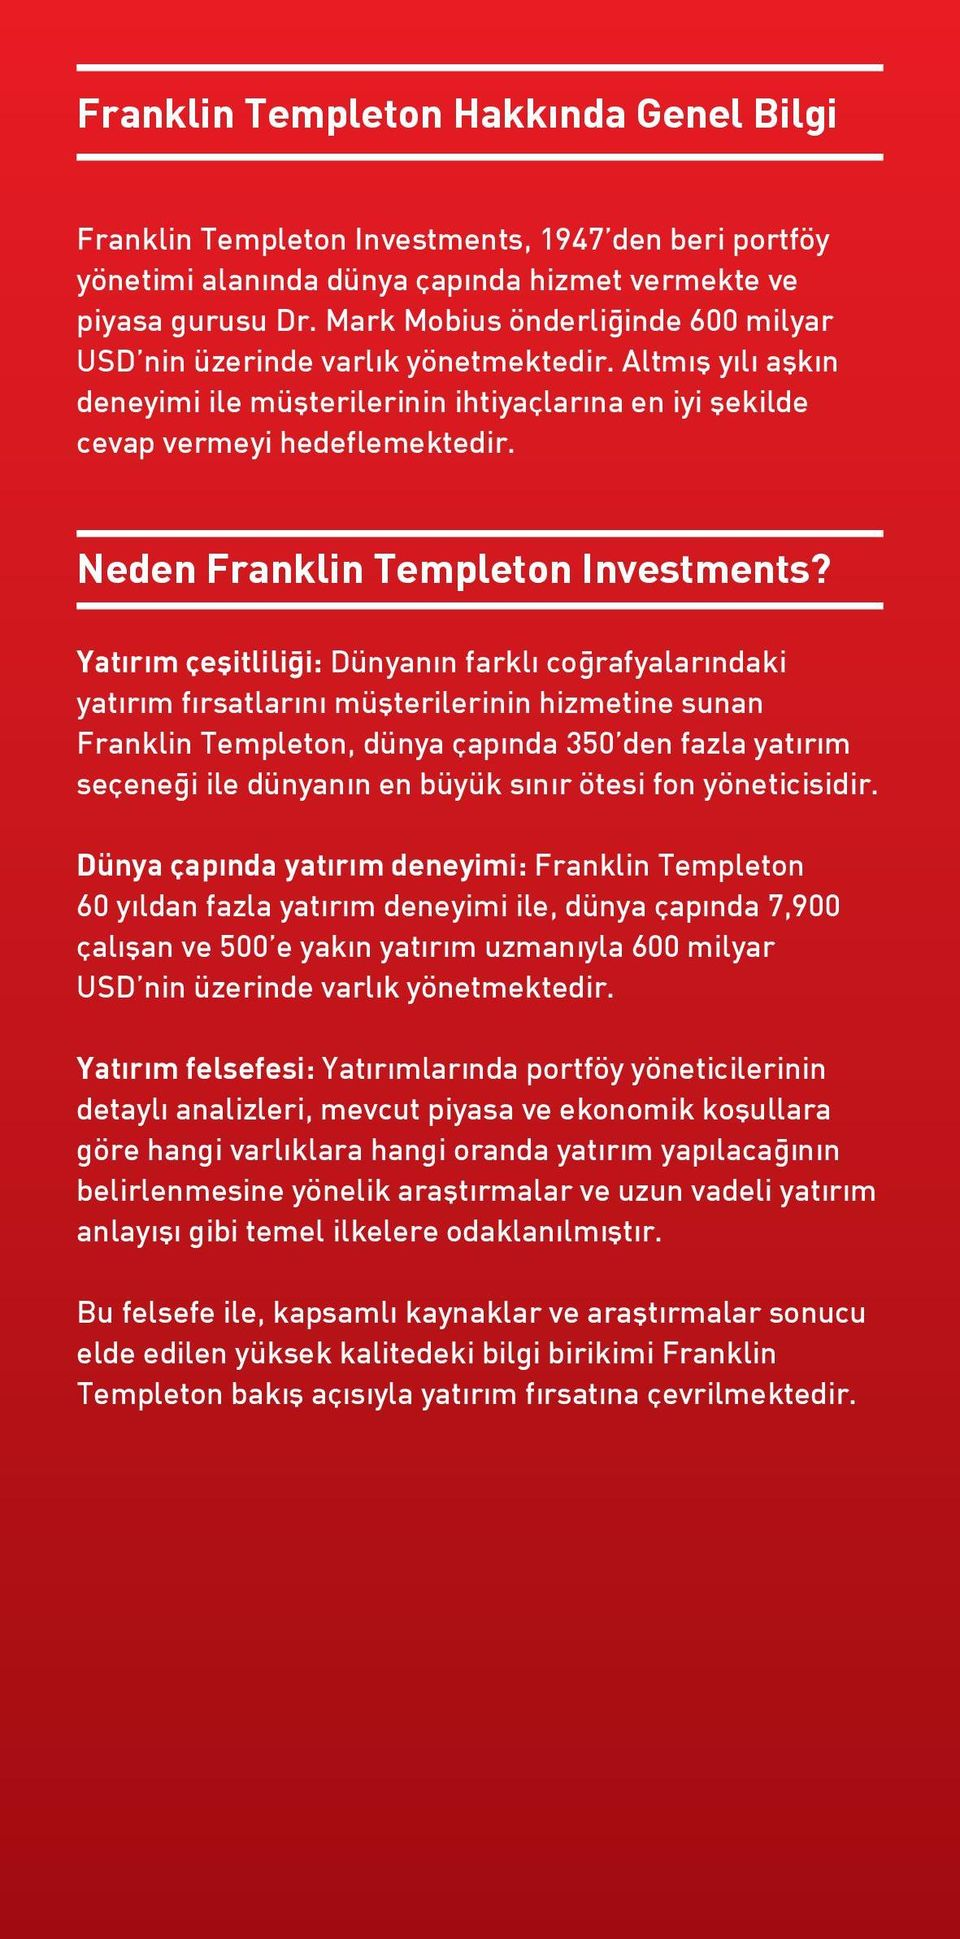 Neden Franklin Templeton Investments?